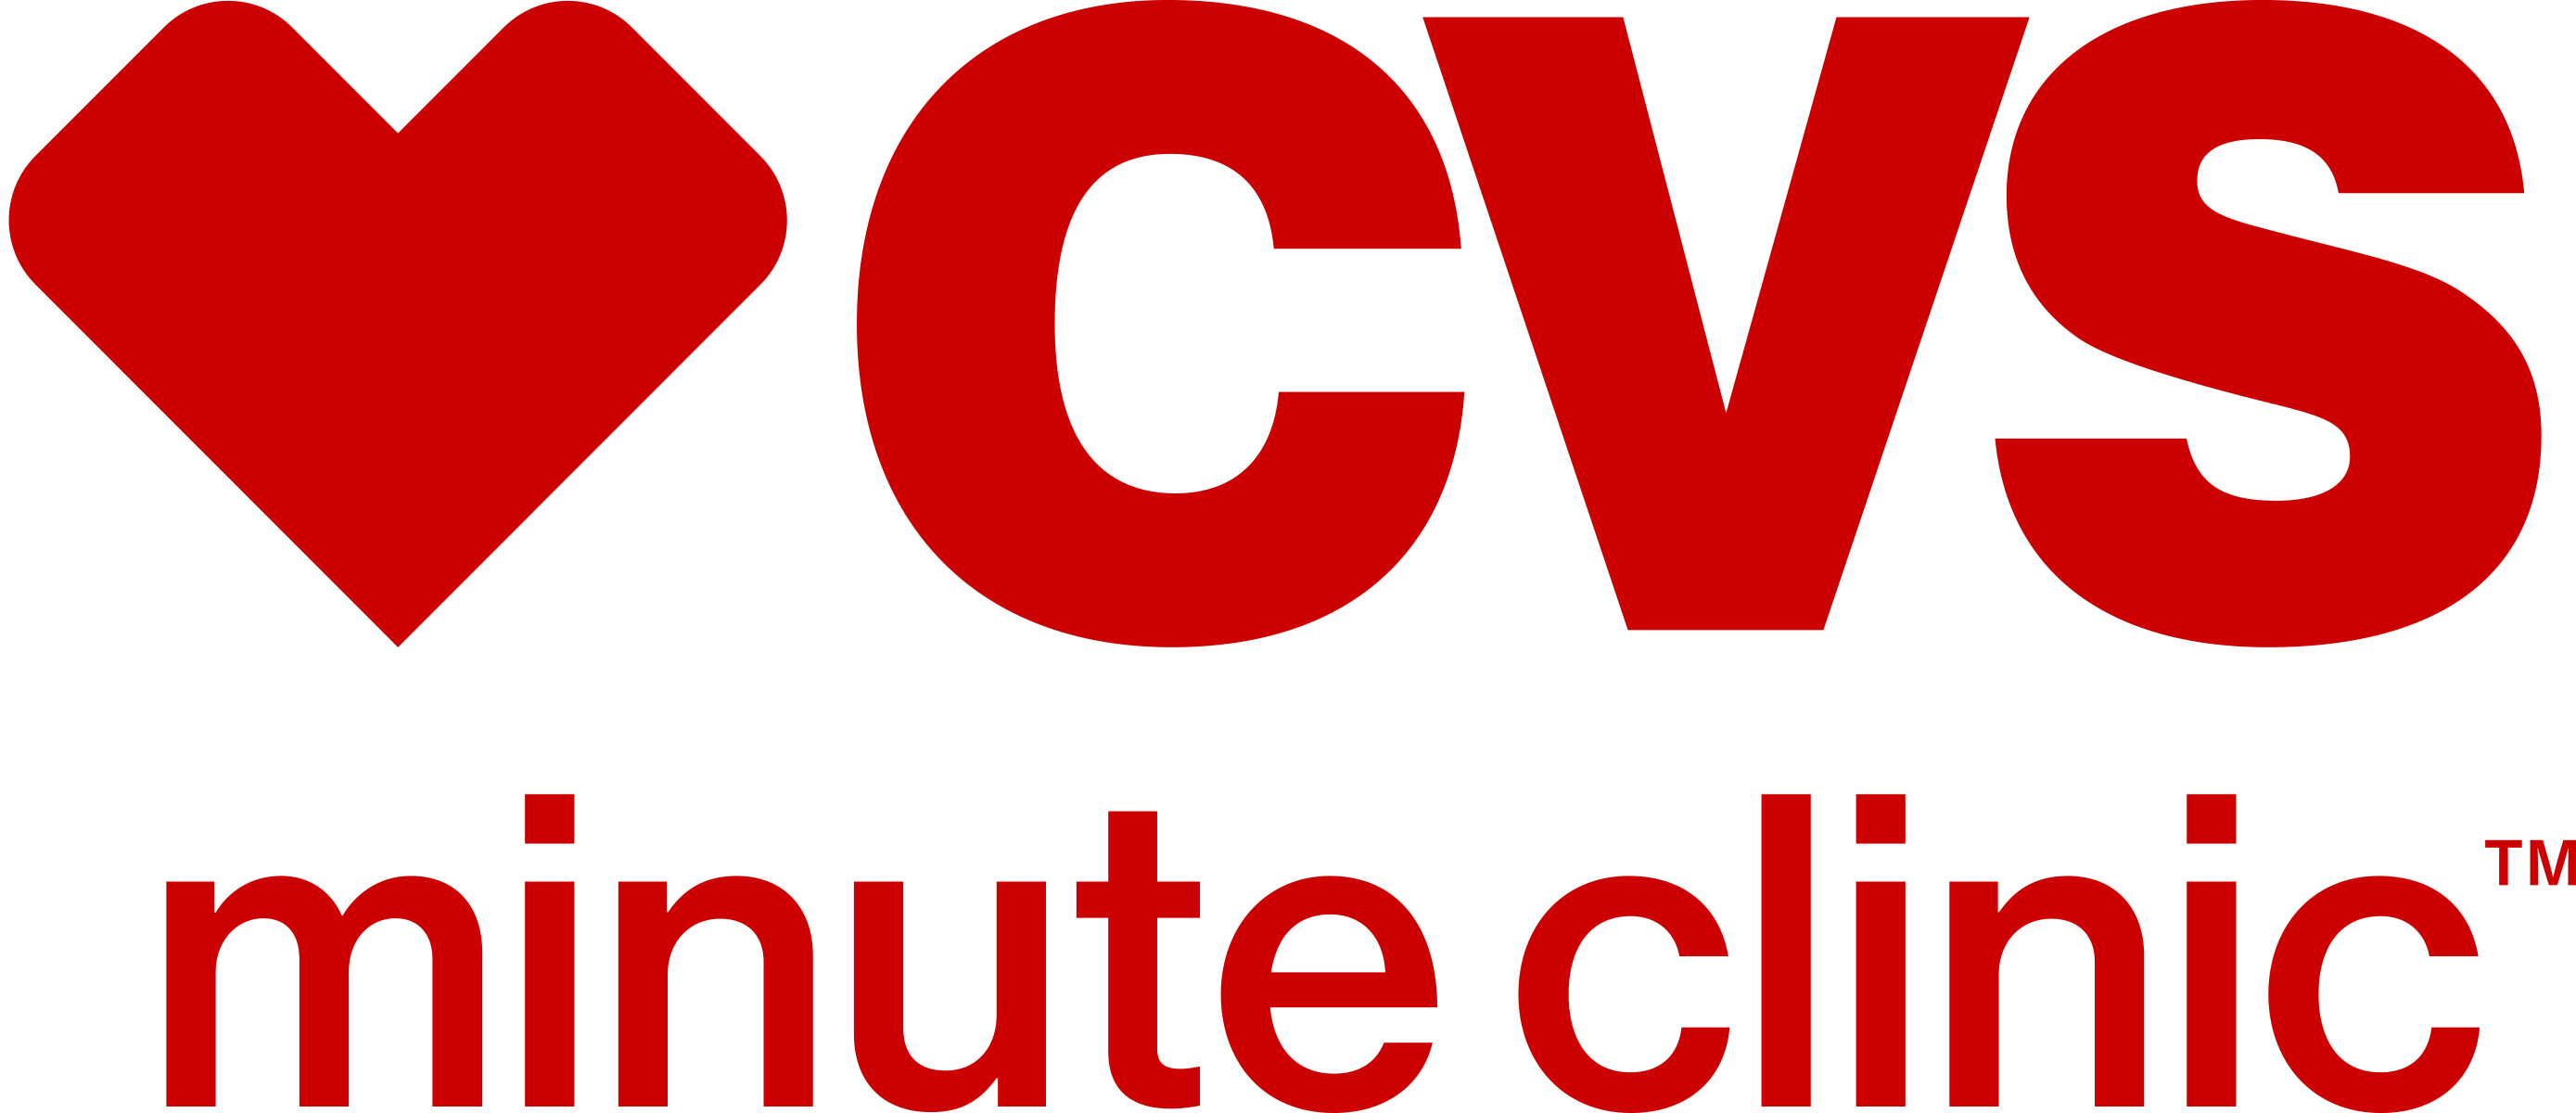 CVS MinuteClinic downloadable logo stacked